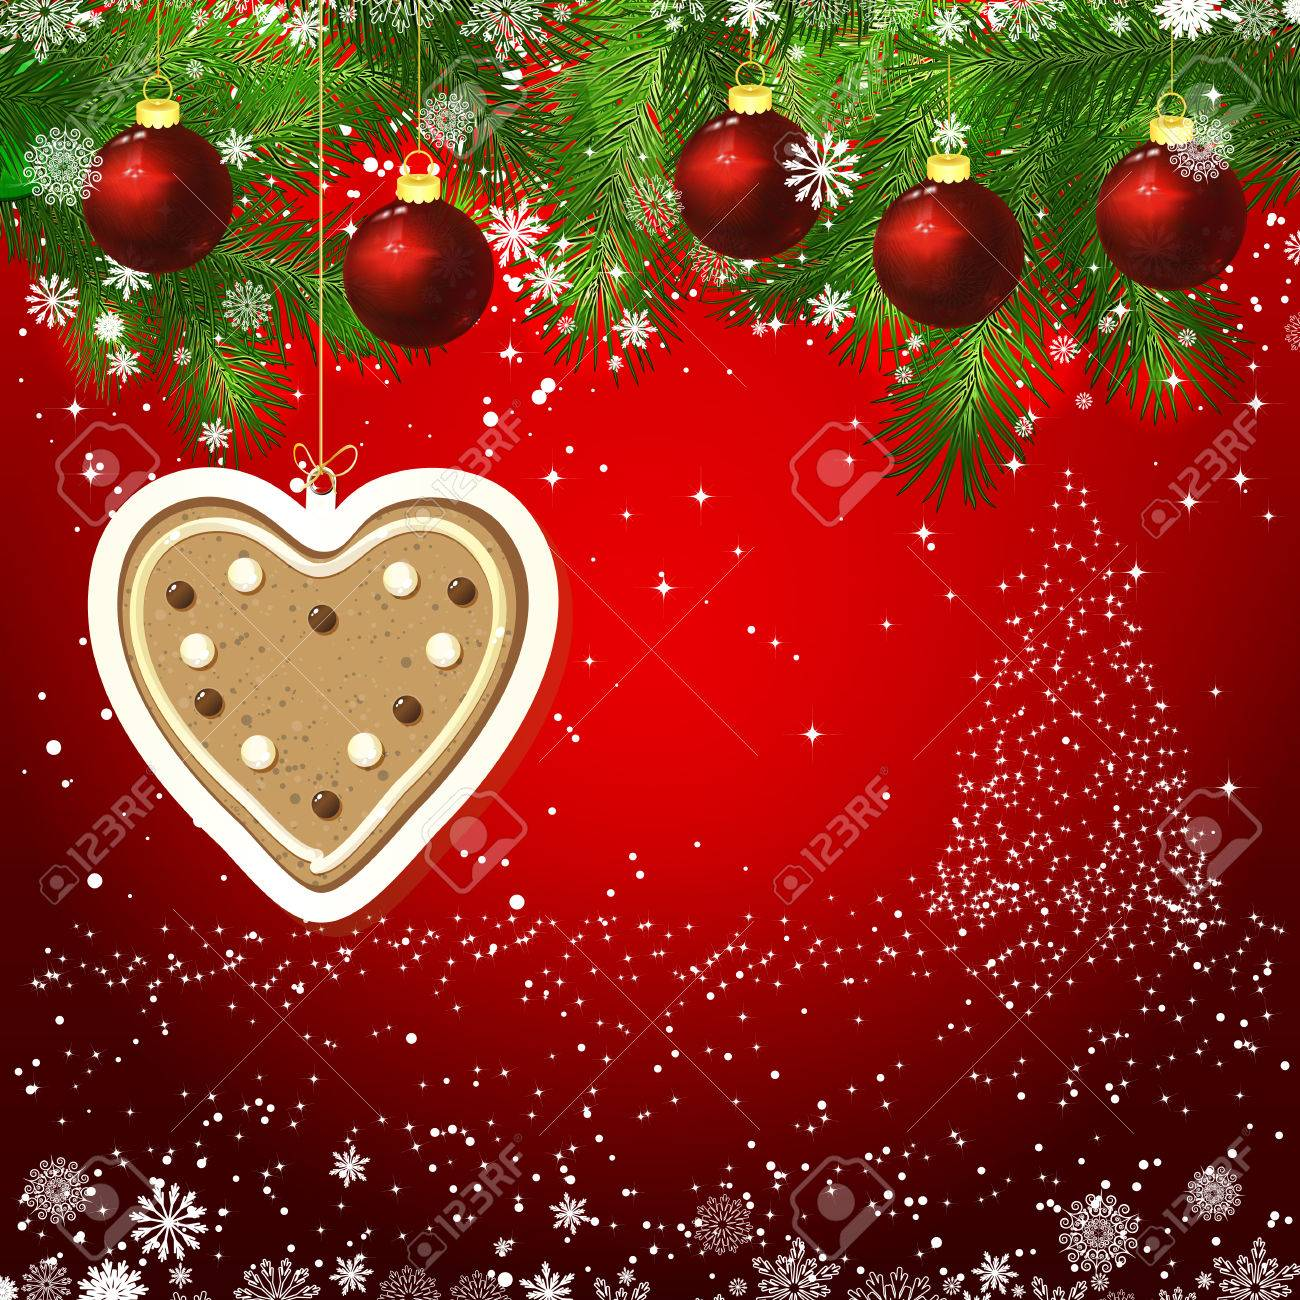 gingerbread heart new year design background template card whit red christmas balls on the green